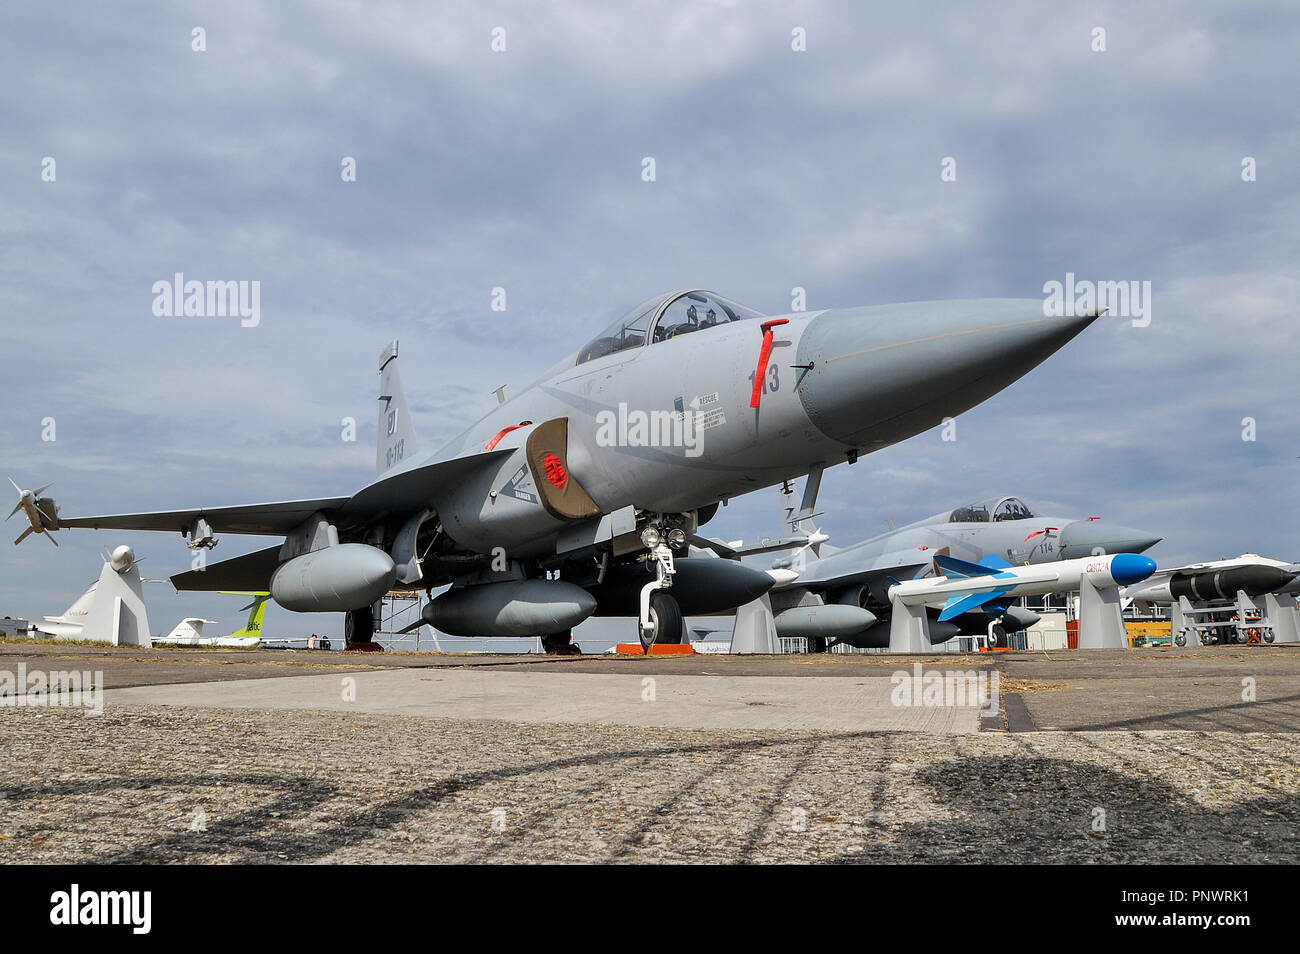 PAC JF-17 Thunder CAC FC-1 Xiaolong (Fierce Dragon) jet fighter plane by Pakistan Aeronautical Complex (PAC) and the Chengdu Aircraft Corporation - Stock Image